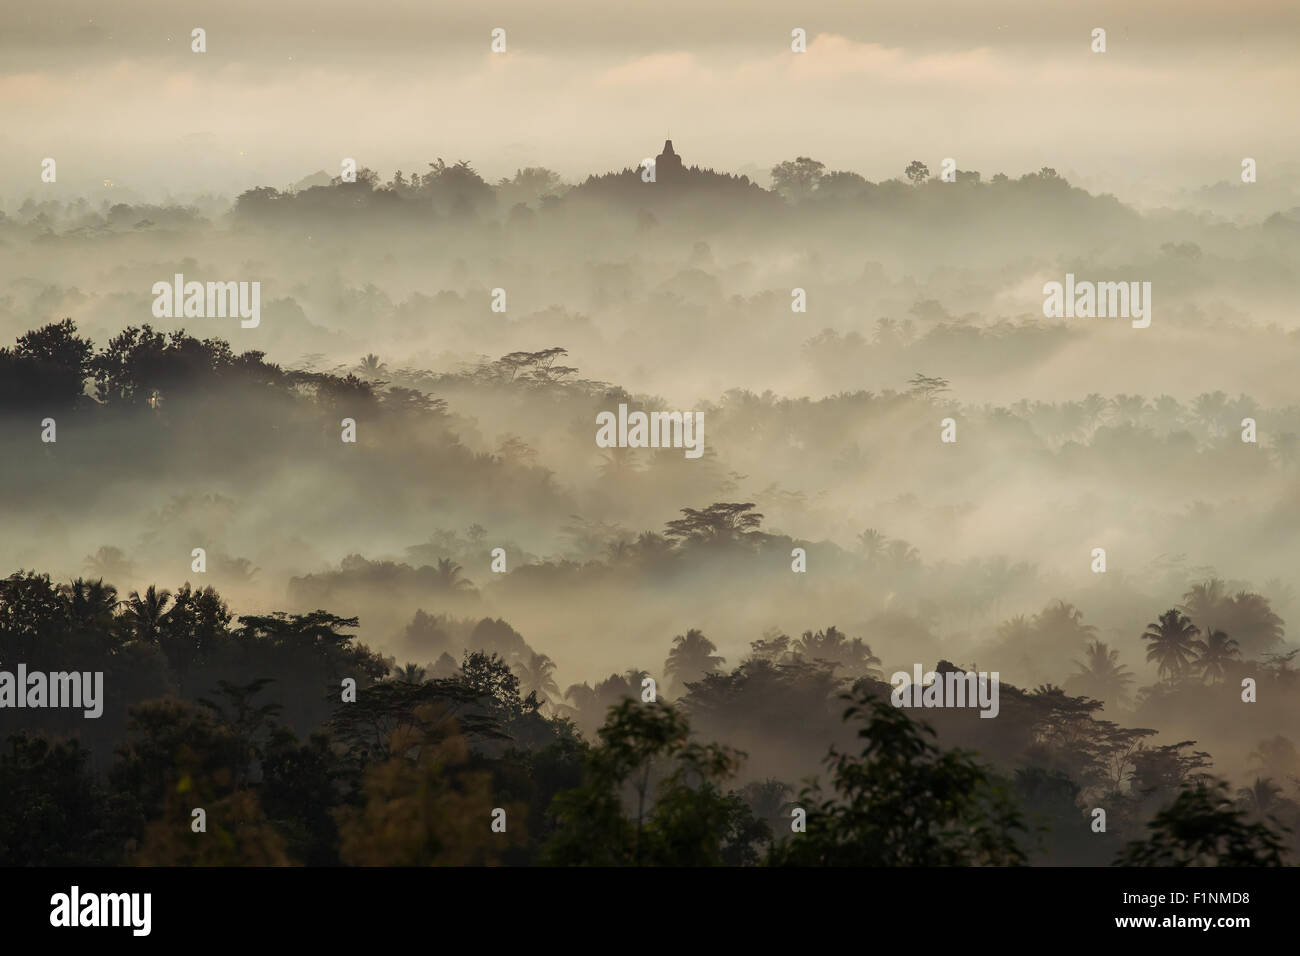 Colorful sunrise over Borobudur temple in misty jungle forest, Indoneisa - Stock Image